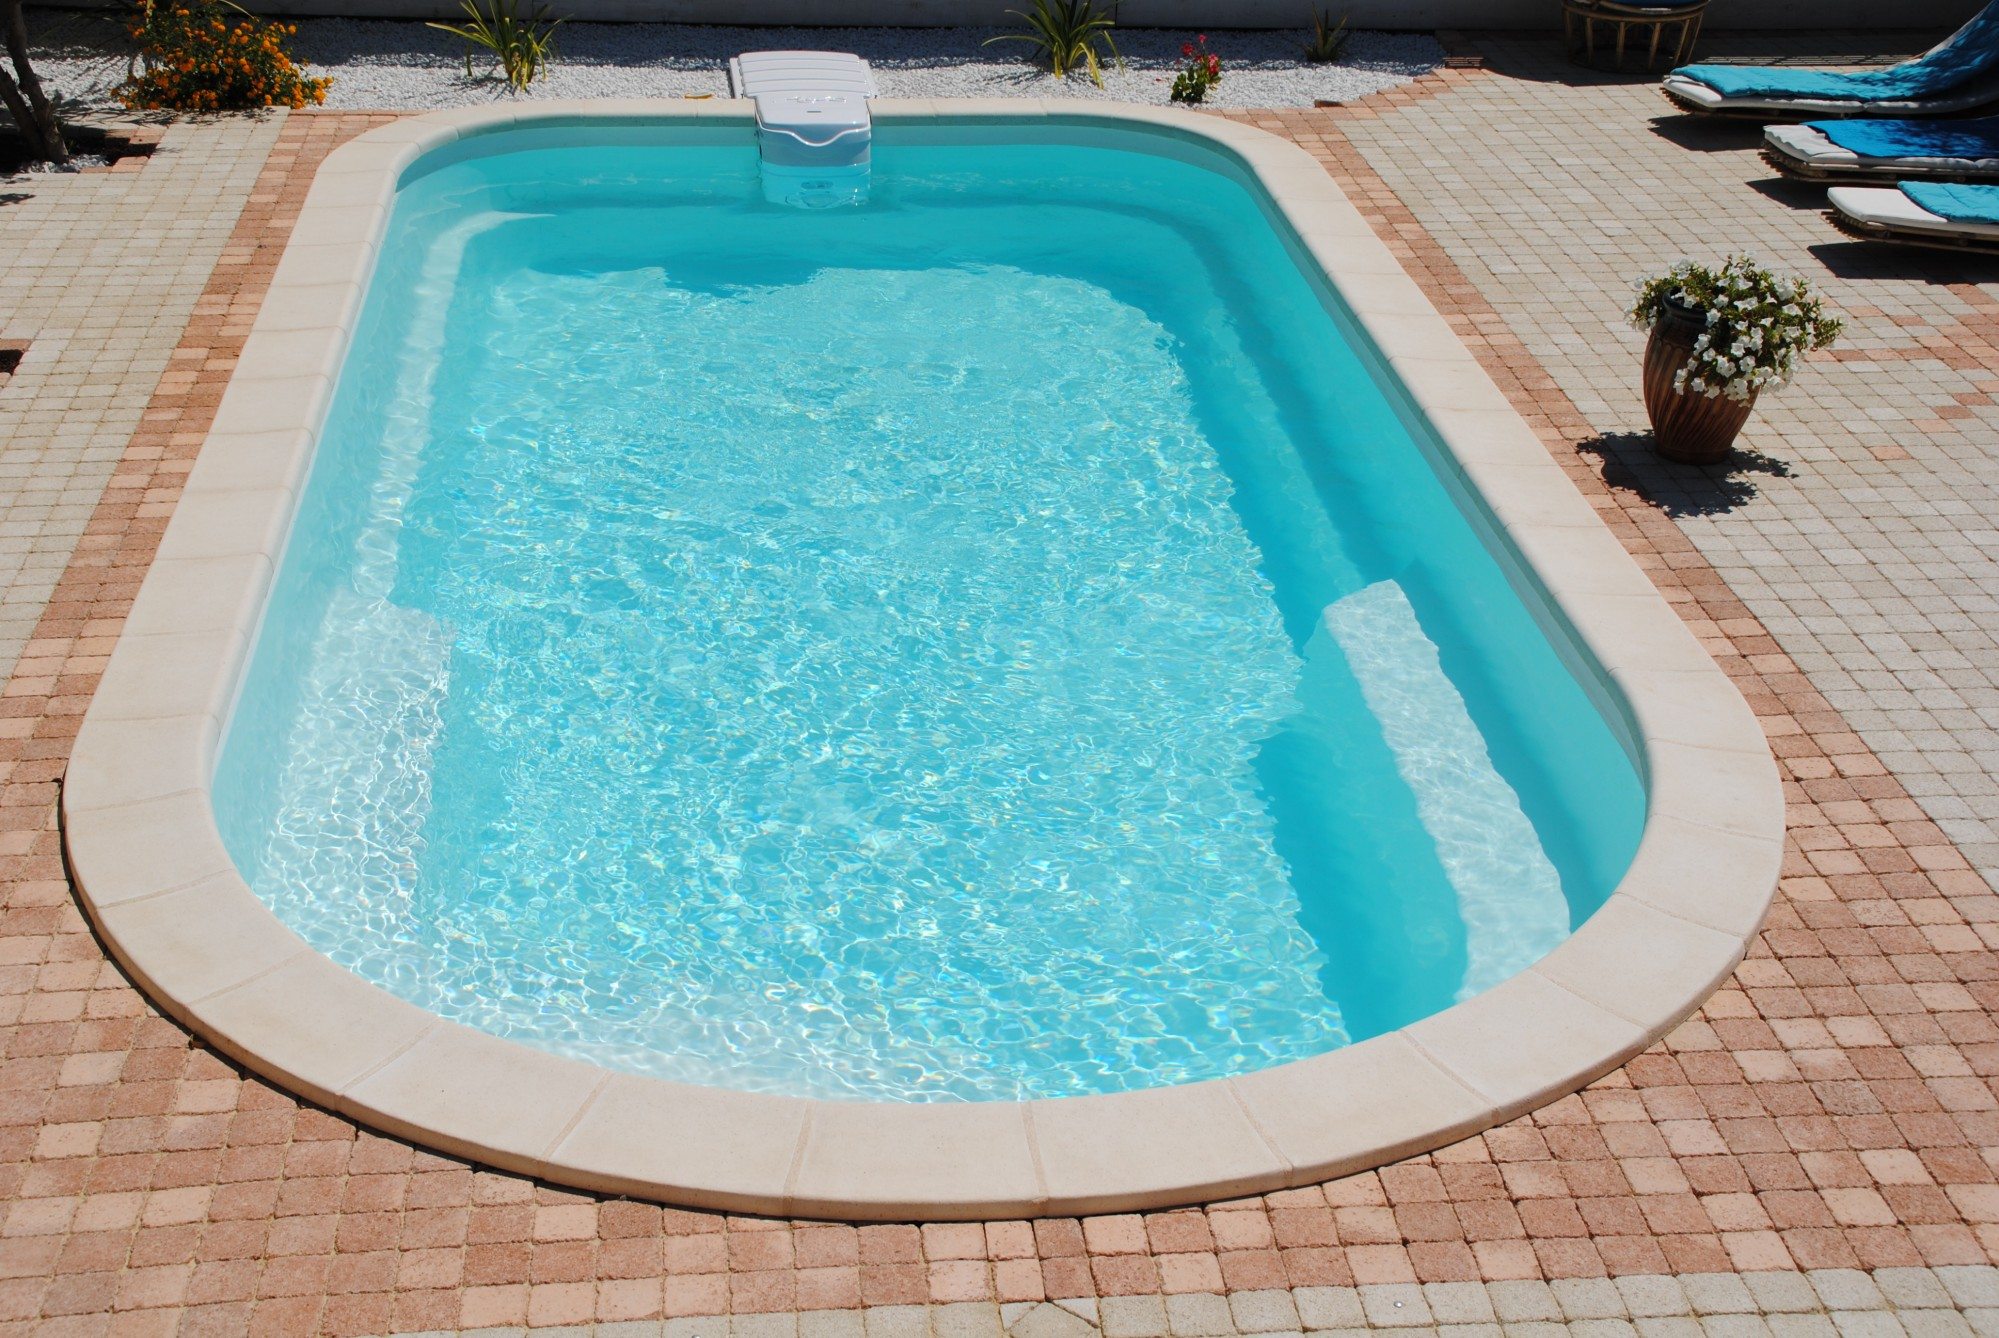 Piscine coque polyester a fond plat avec banquettes modele axeo 800 bf istres ax o piscines for Acheter une piscine